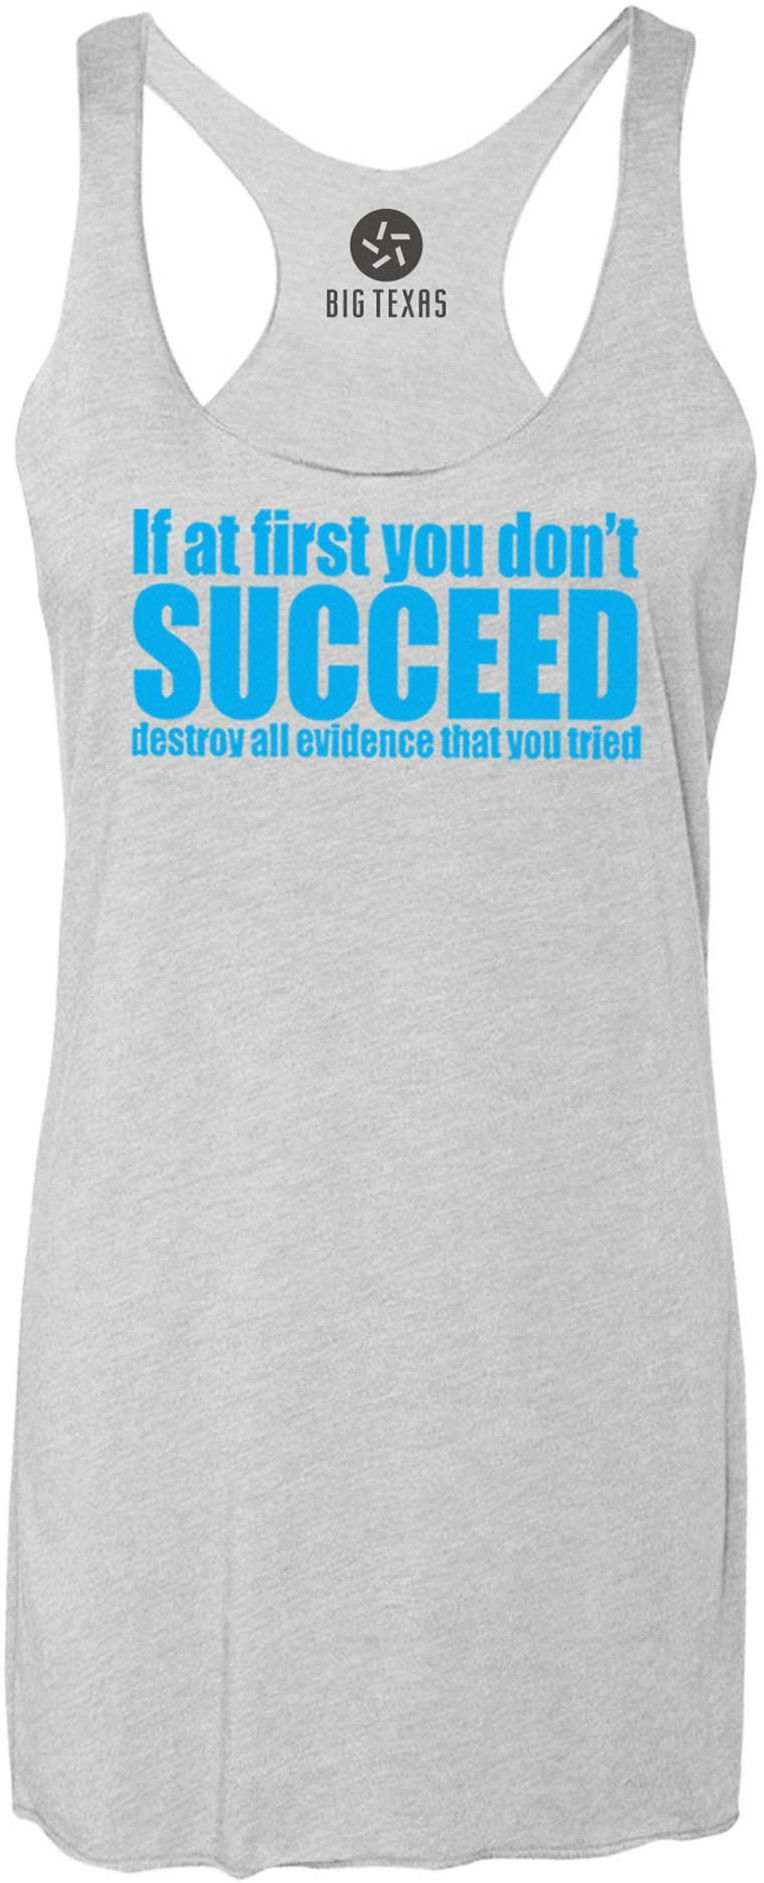 If at First You Dont Succeed (Blue) Tri-Blend Racerback Tank-Top